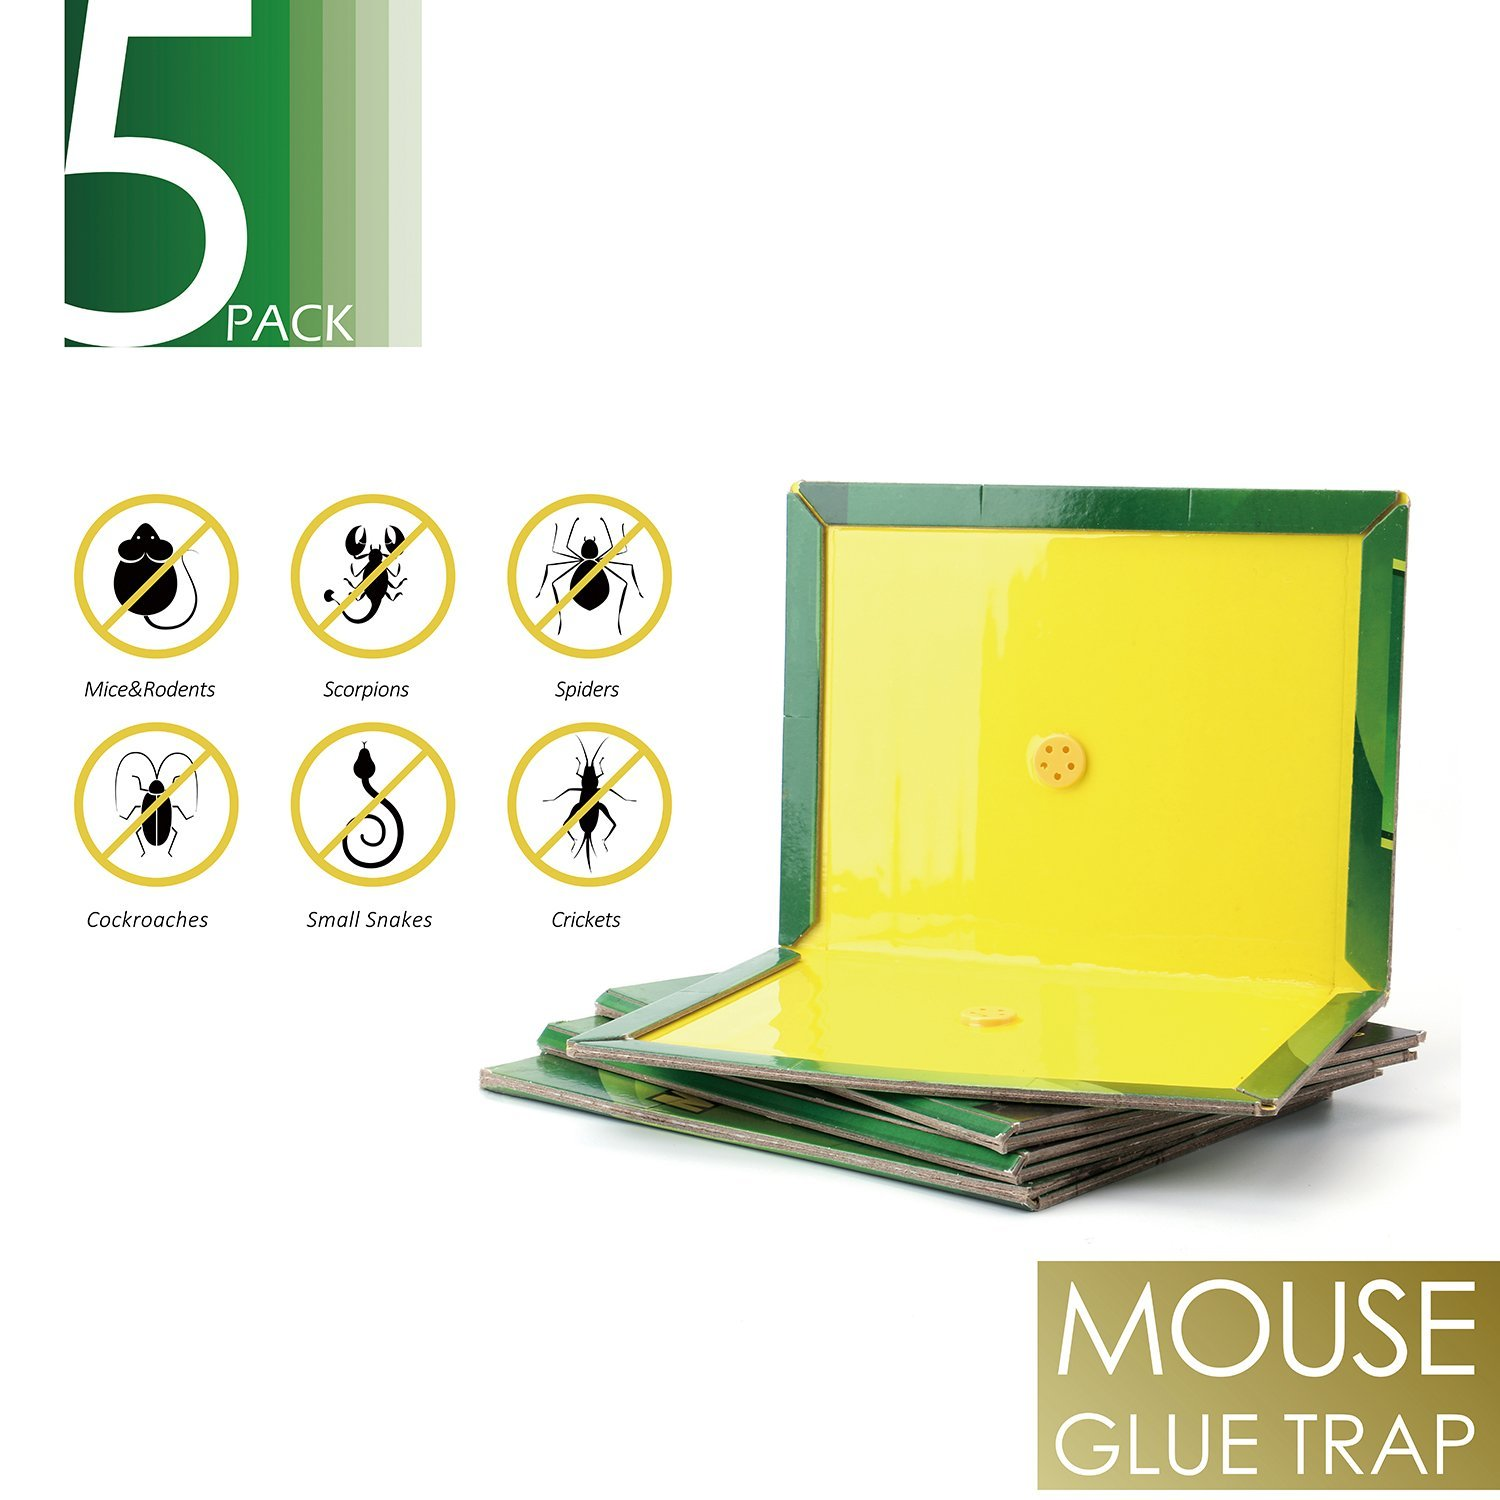 Mouse Glue Trap-5 Pack Rat Killer and Insect Sticky Board Catch with Pre-Baited Peanut Butter Scented,Insecticide Free Pest Control for Mice & Rodents & Cockroaches & Bugs & Ants & Spiders